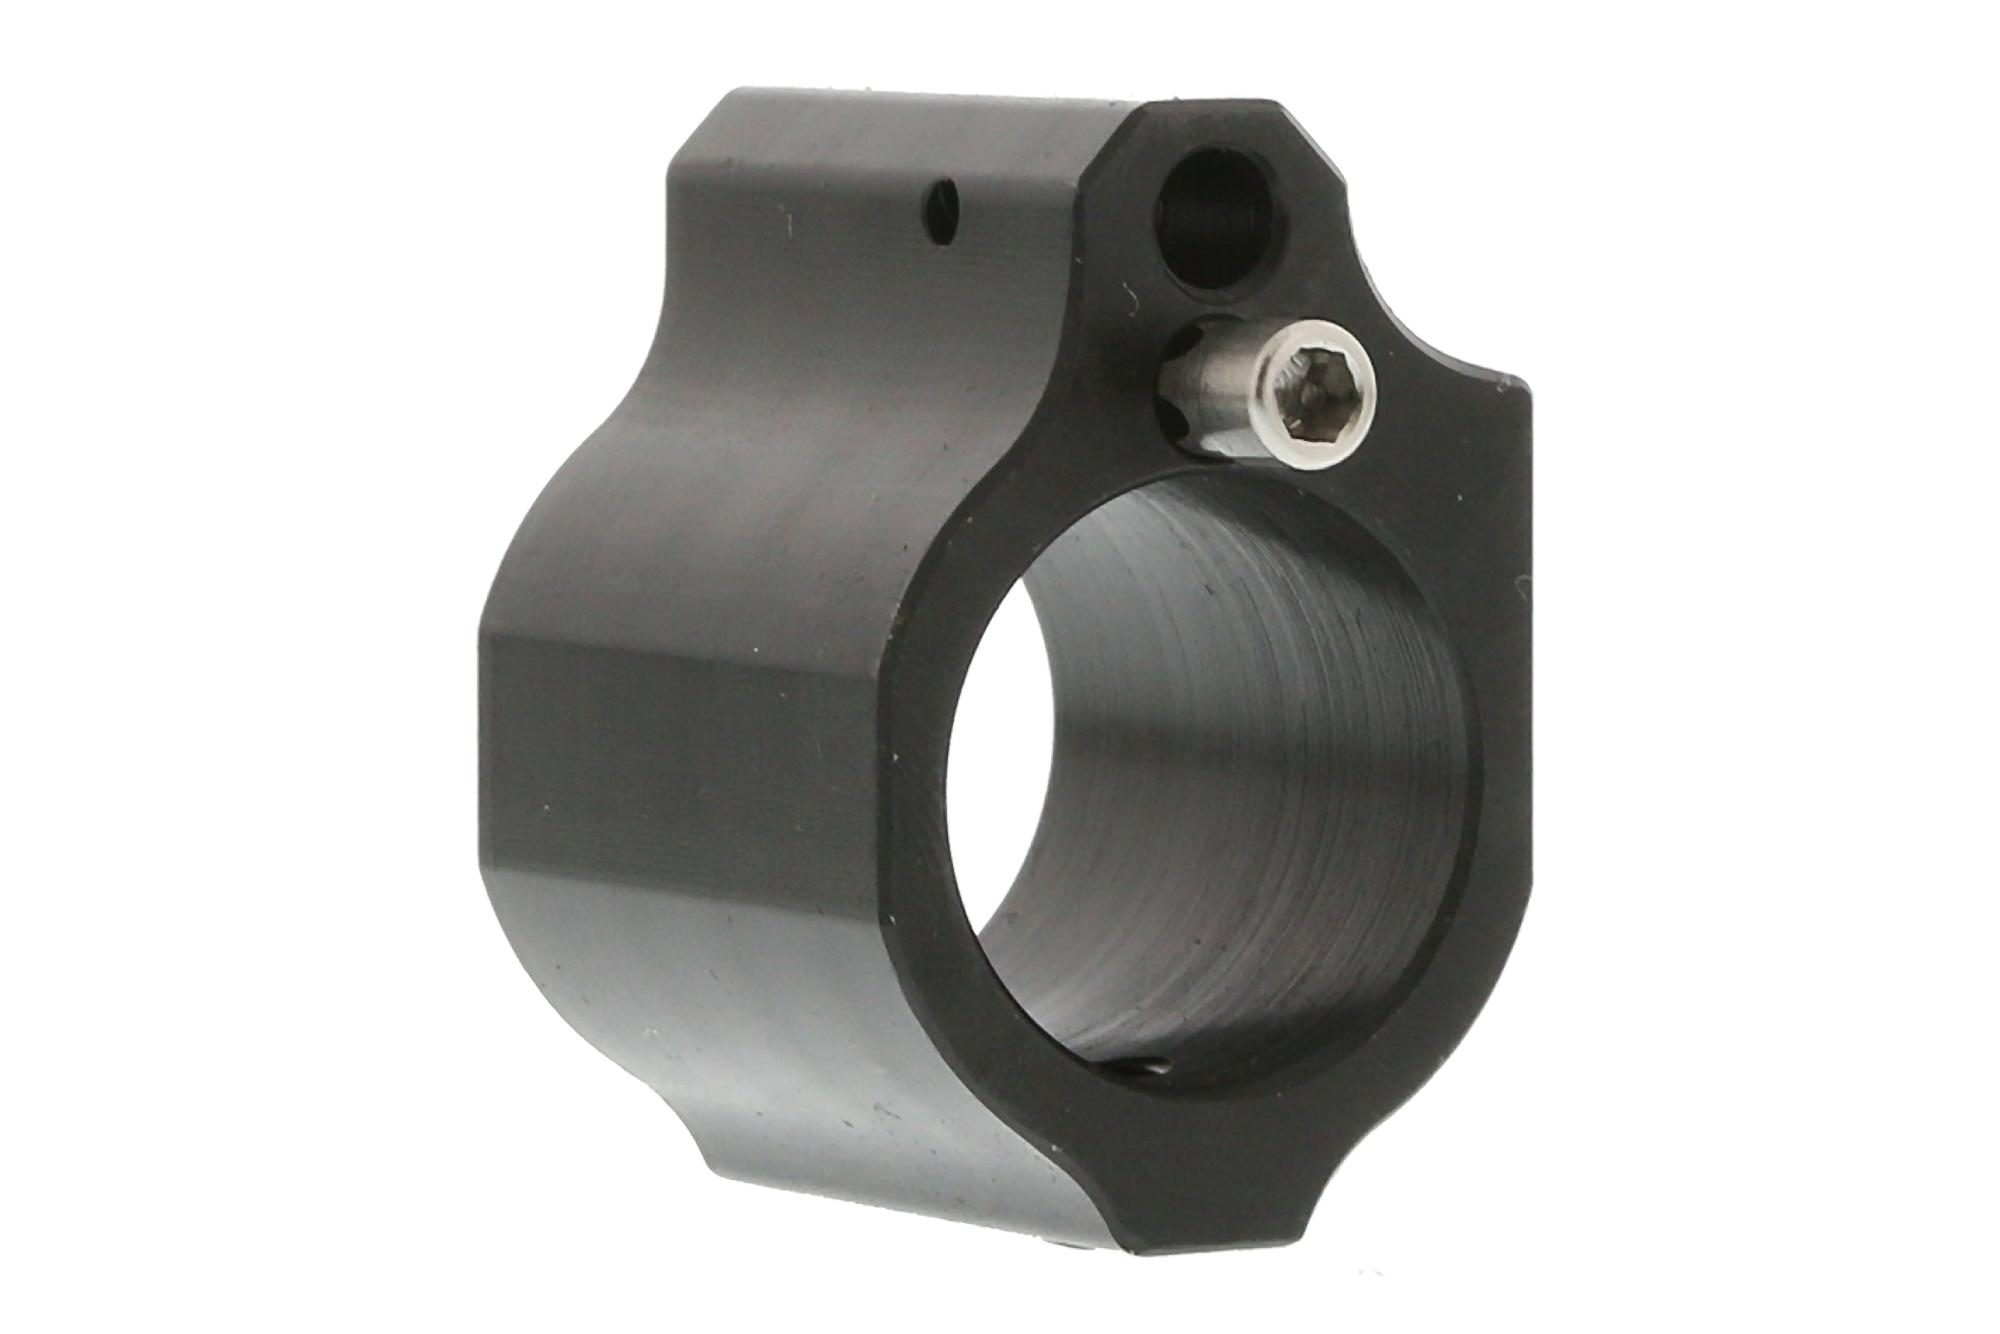 The Odin Works Adjustable low profile AR15 gas block .750 is Nitride coated